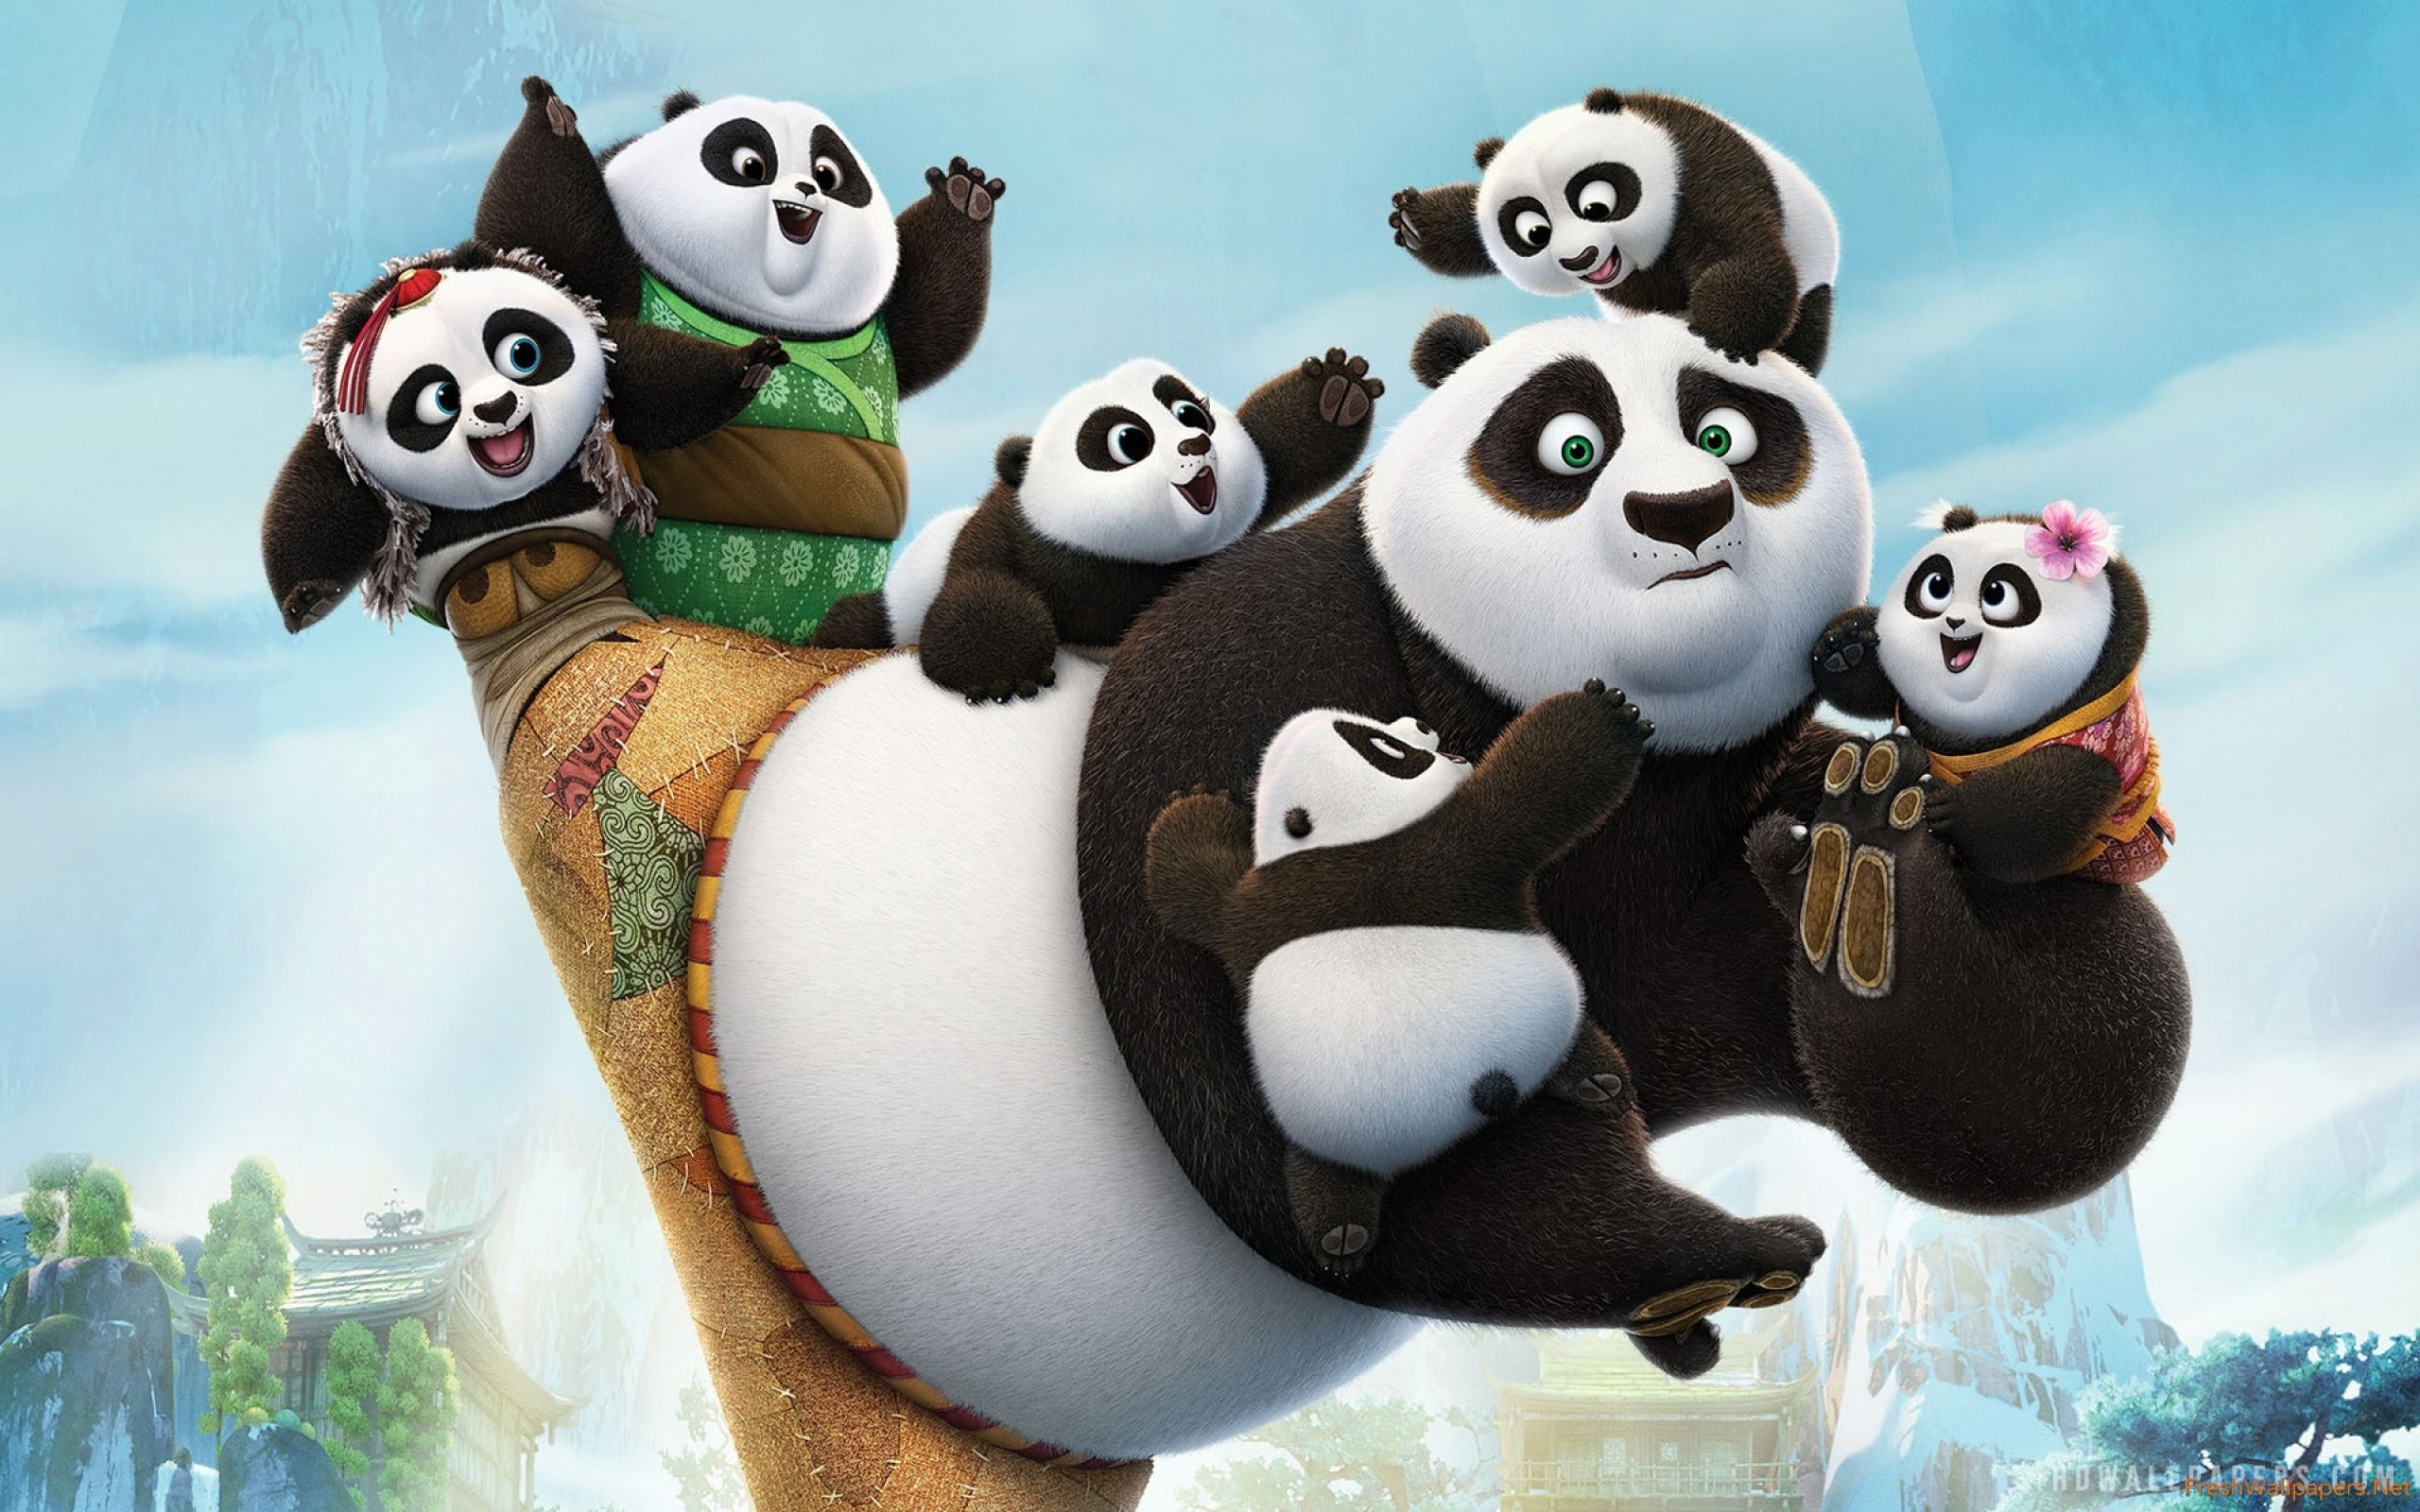 2560x1600 Kung Fu Panda 3 iPhone wallpapers